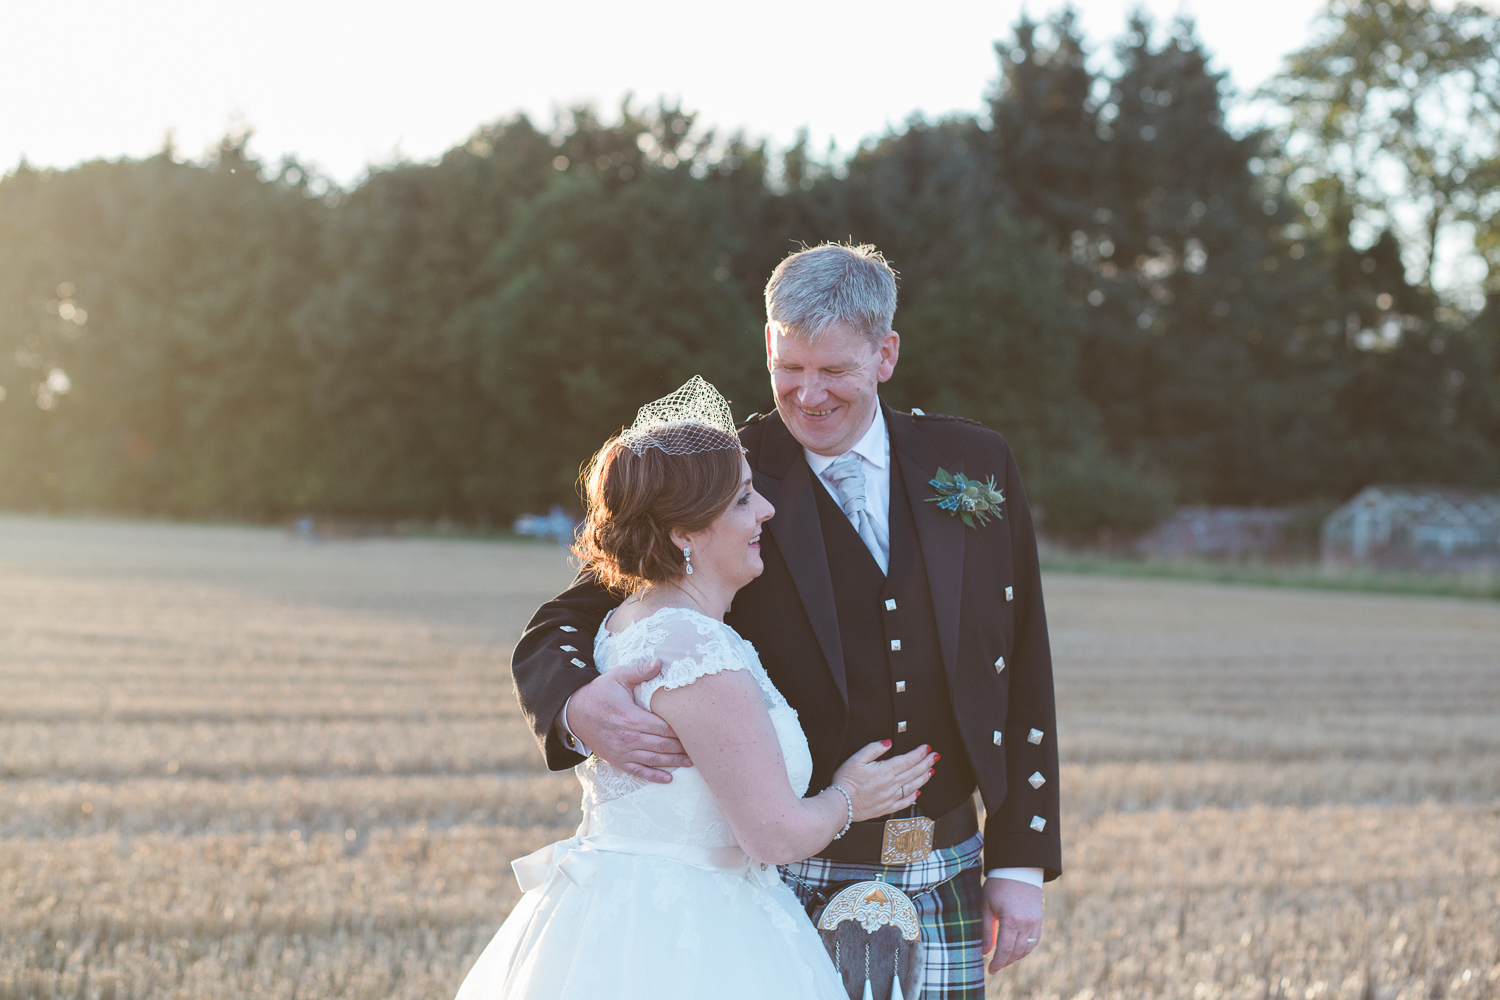 Aberdeen wedding photographer, Aberdeen wedding photographers, wedding photography Aberdeen